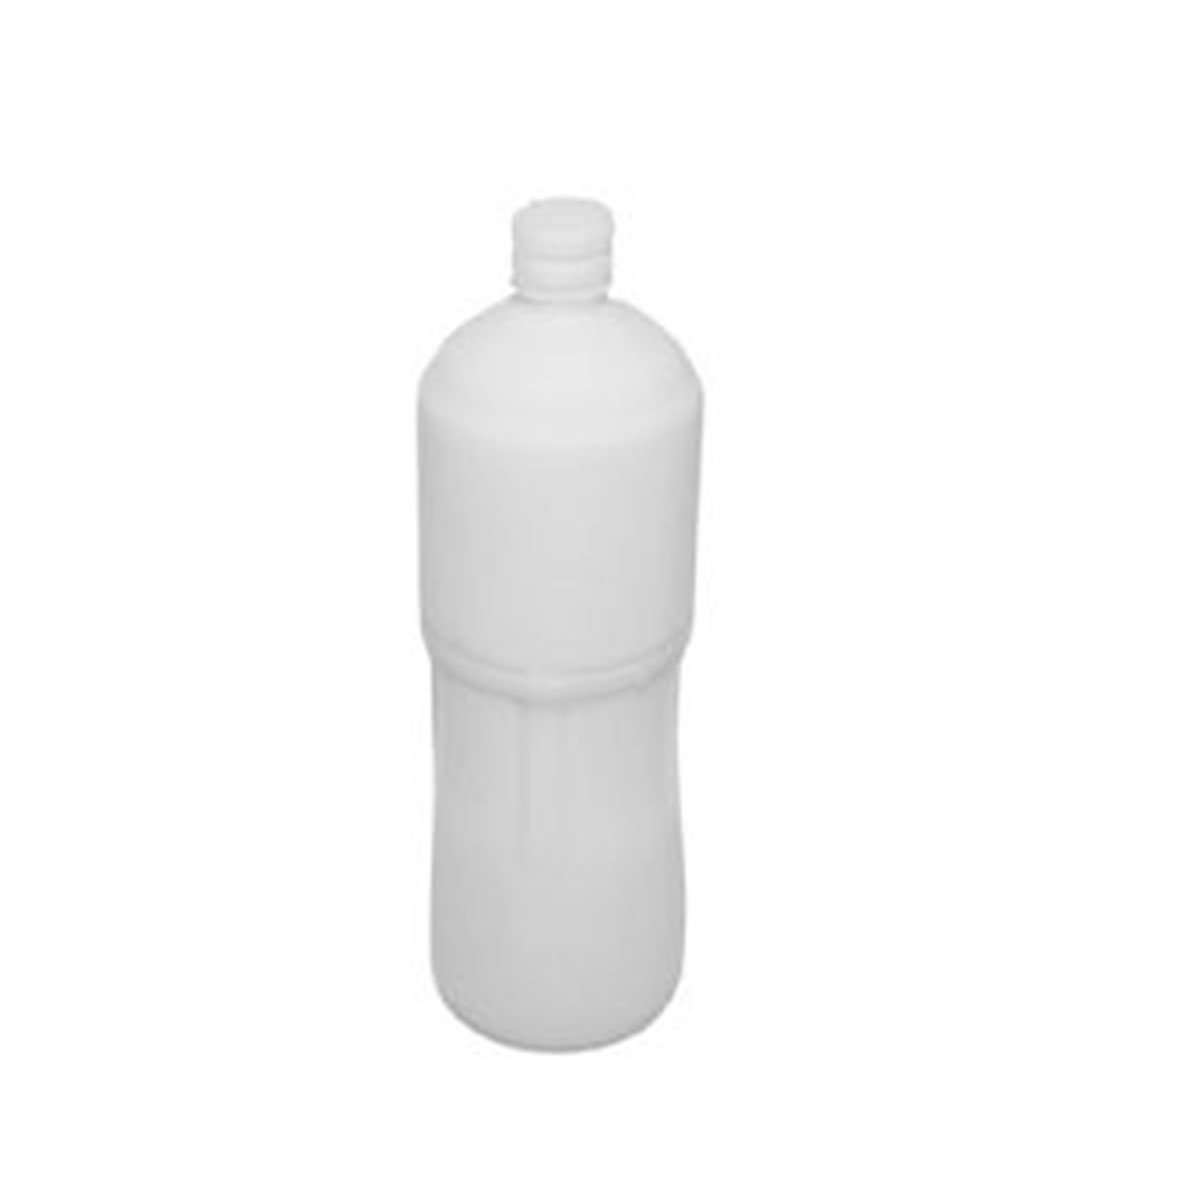 Drink Bottle PVC Flash Drive-You can change up to 2 of the base PVC colours and print your logo in 1-2 colours in 1 position.